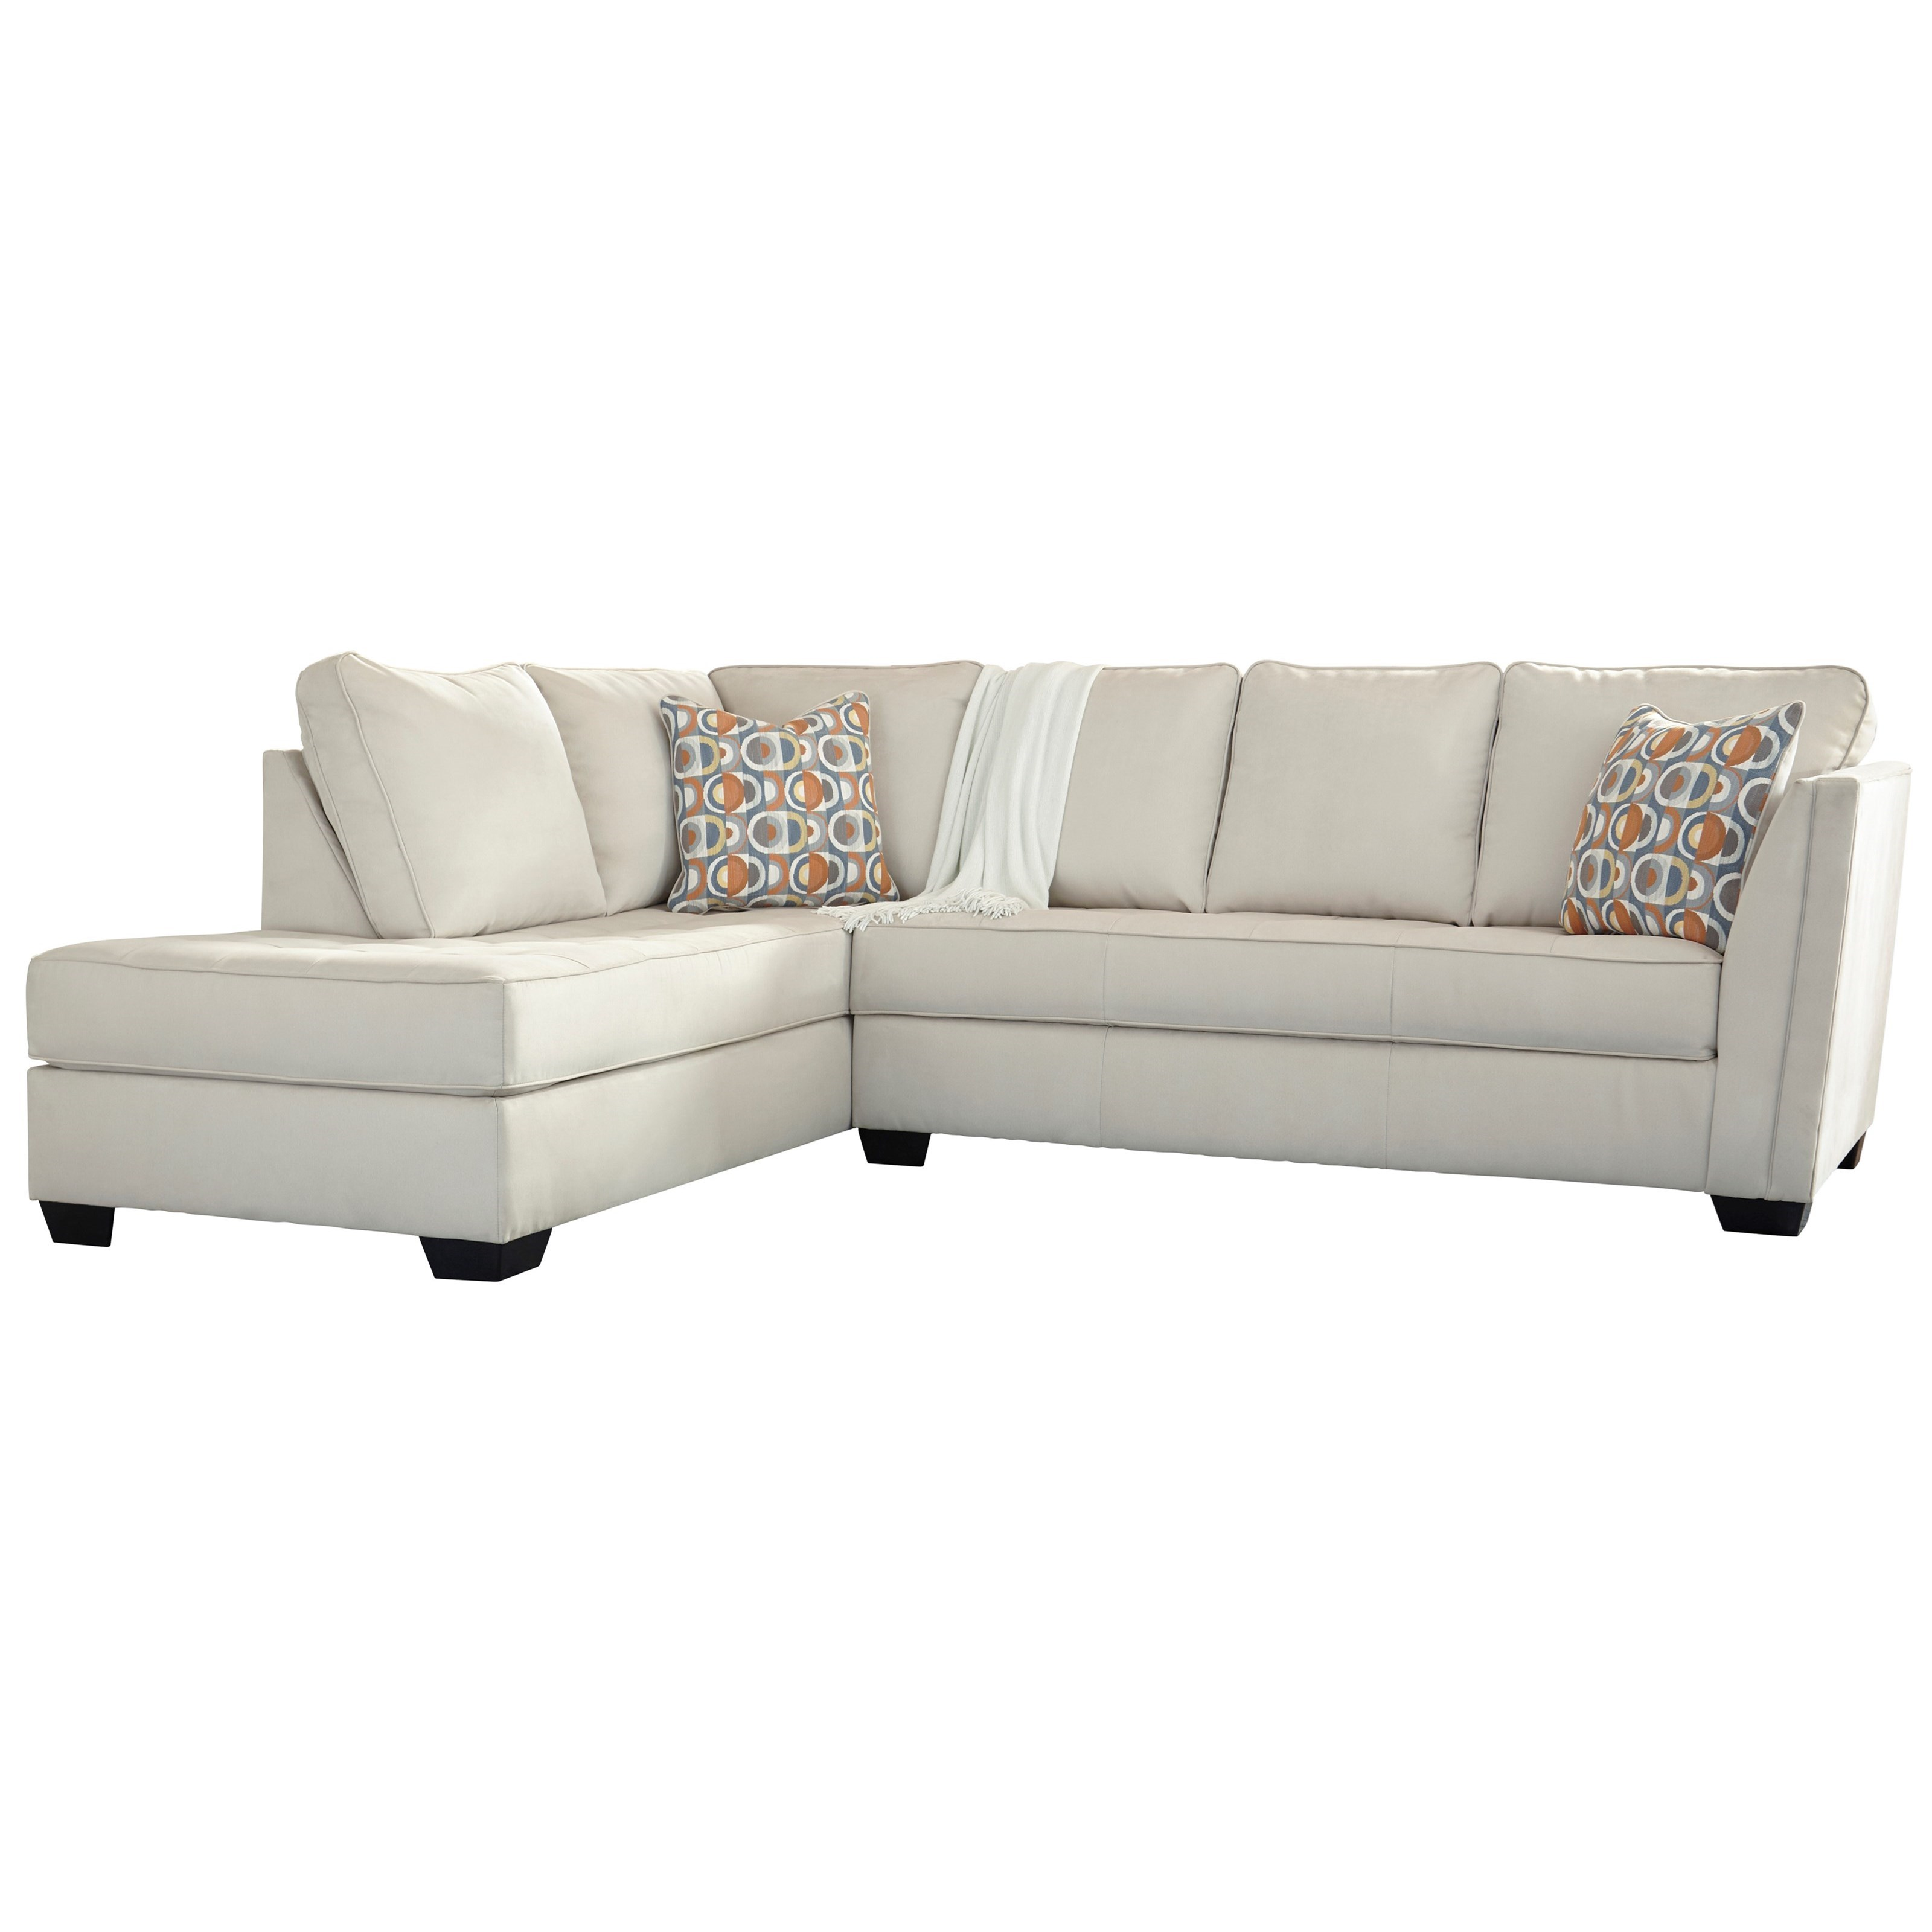 Filone Contemporary Sectional Sofa With Chaise And Cushion Tufting By Signature Design Ashley At Furniture Liancemart